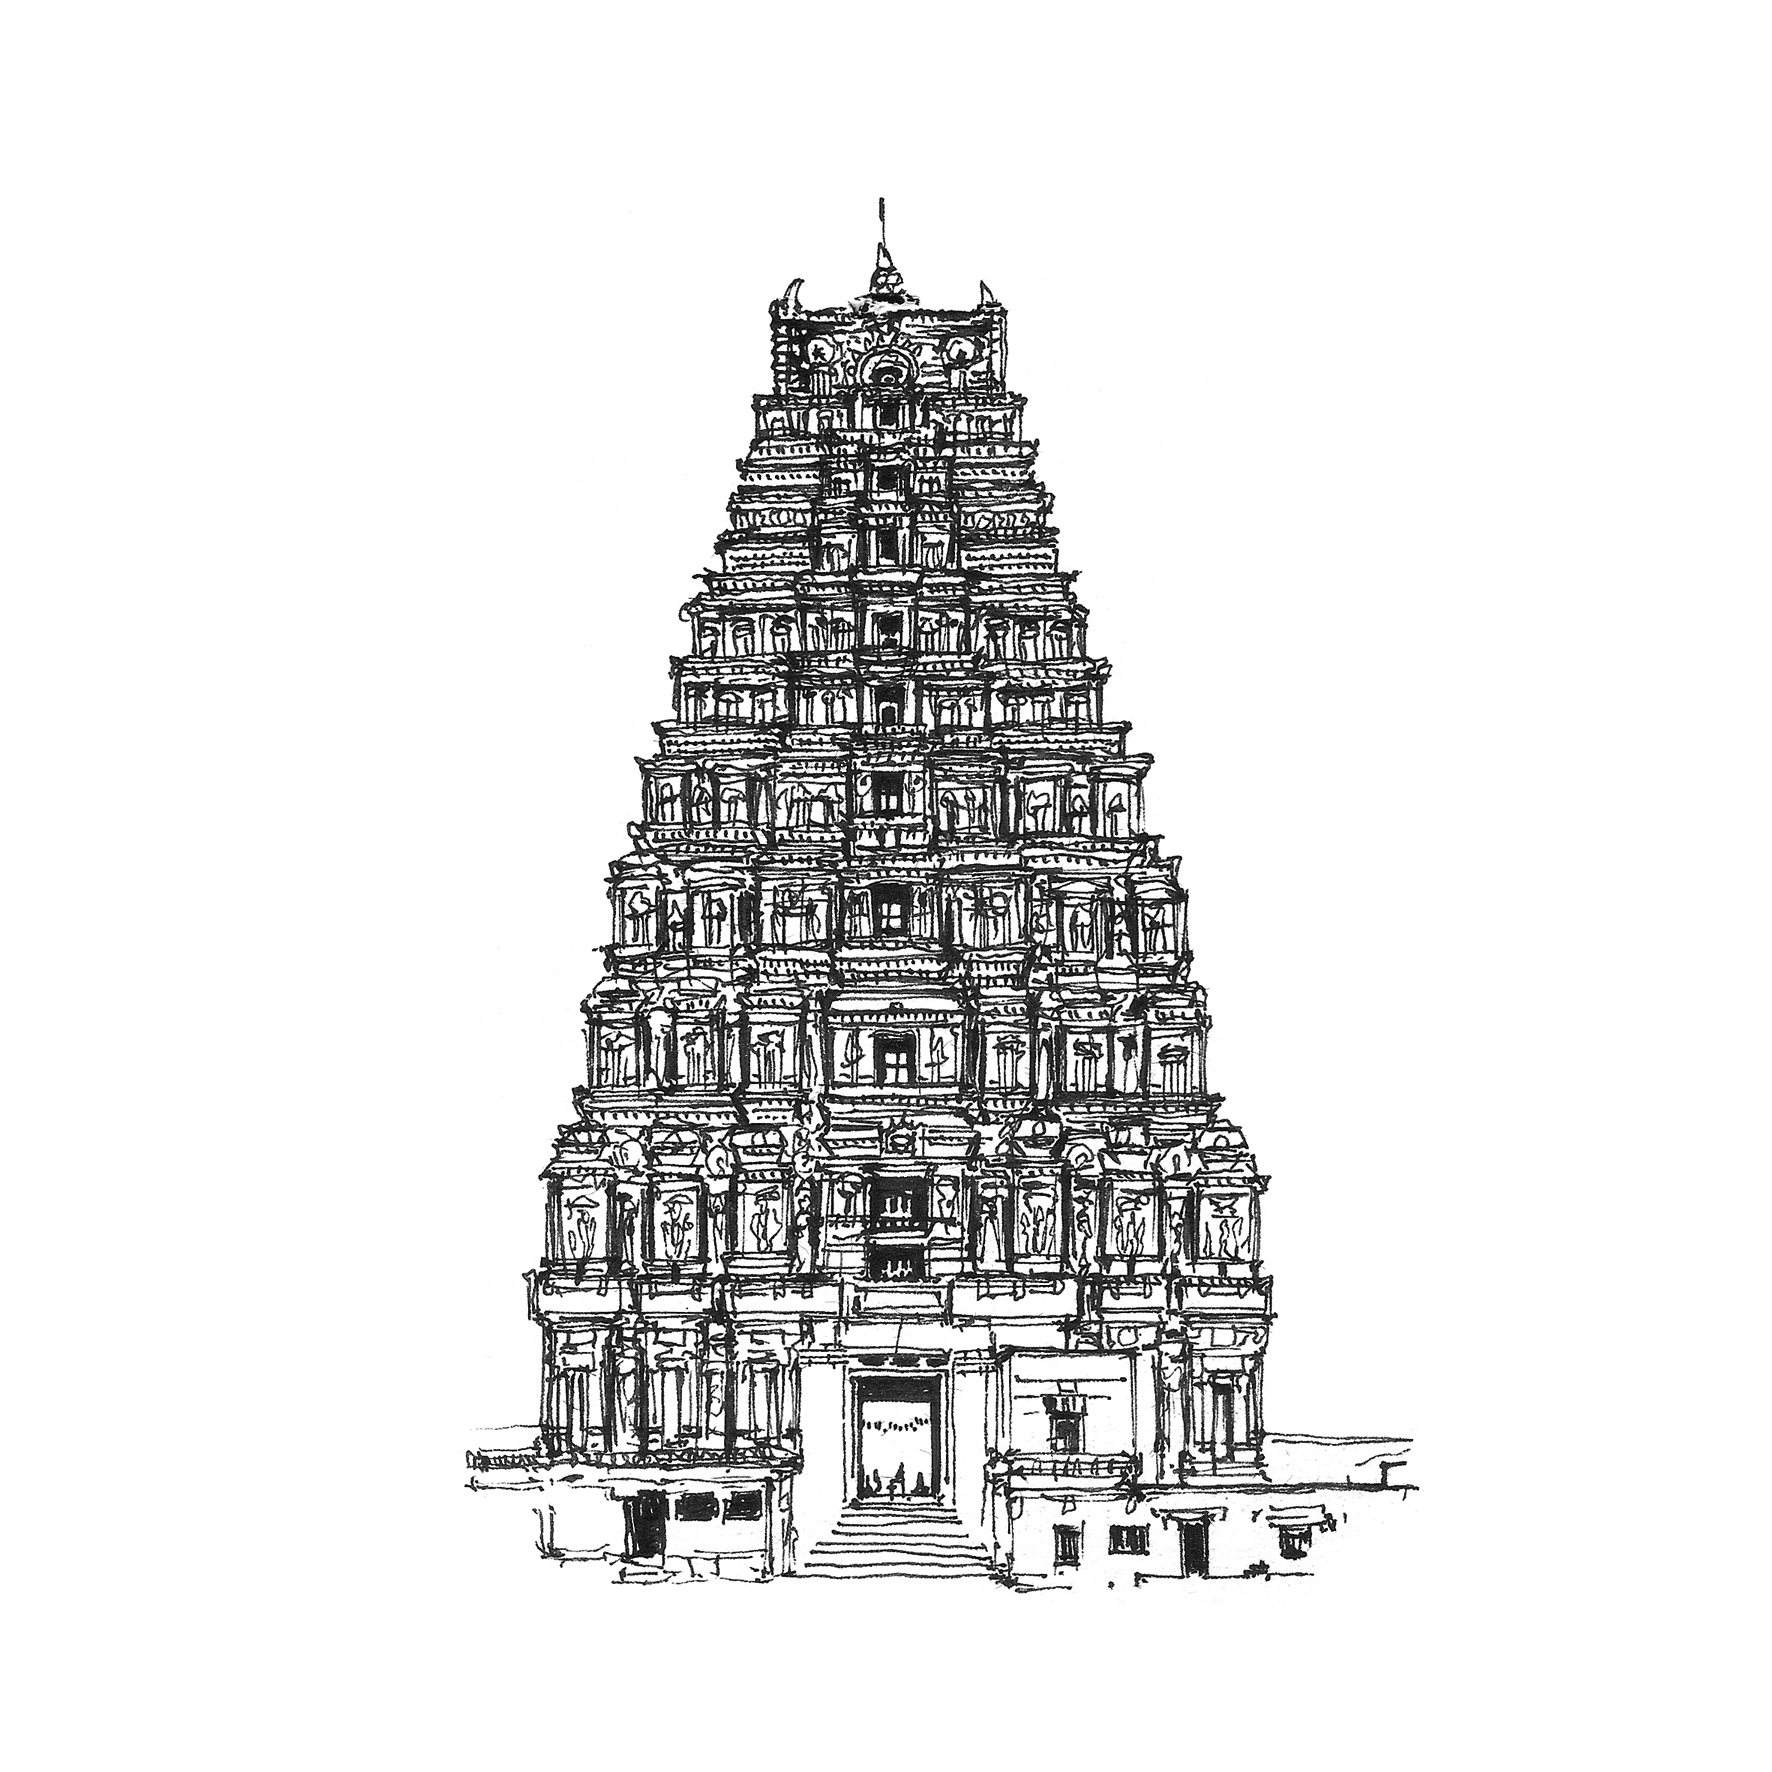 monuments of india drawing stock pictures taj mahal sketch and silhouettes monuments drawing india of